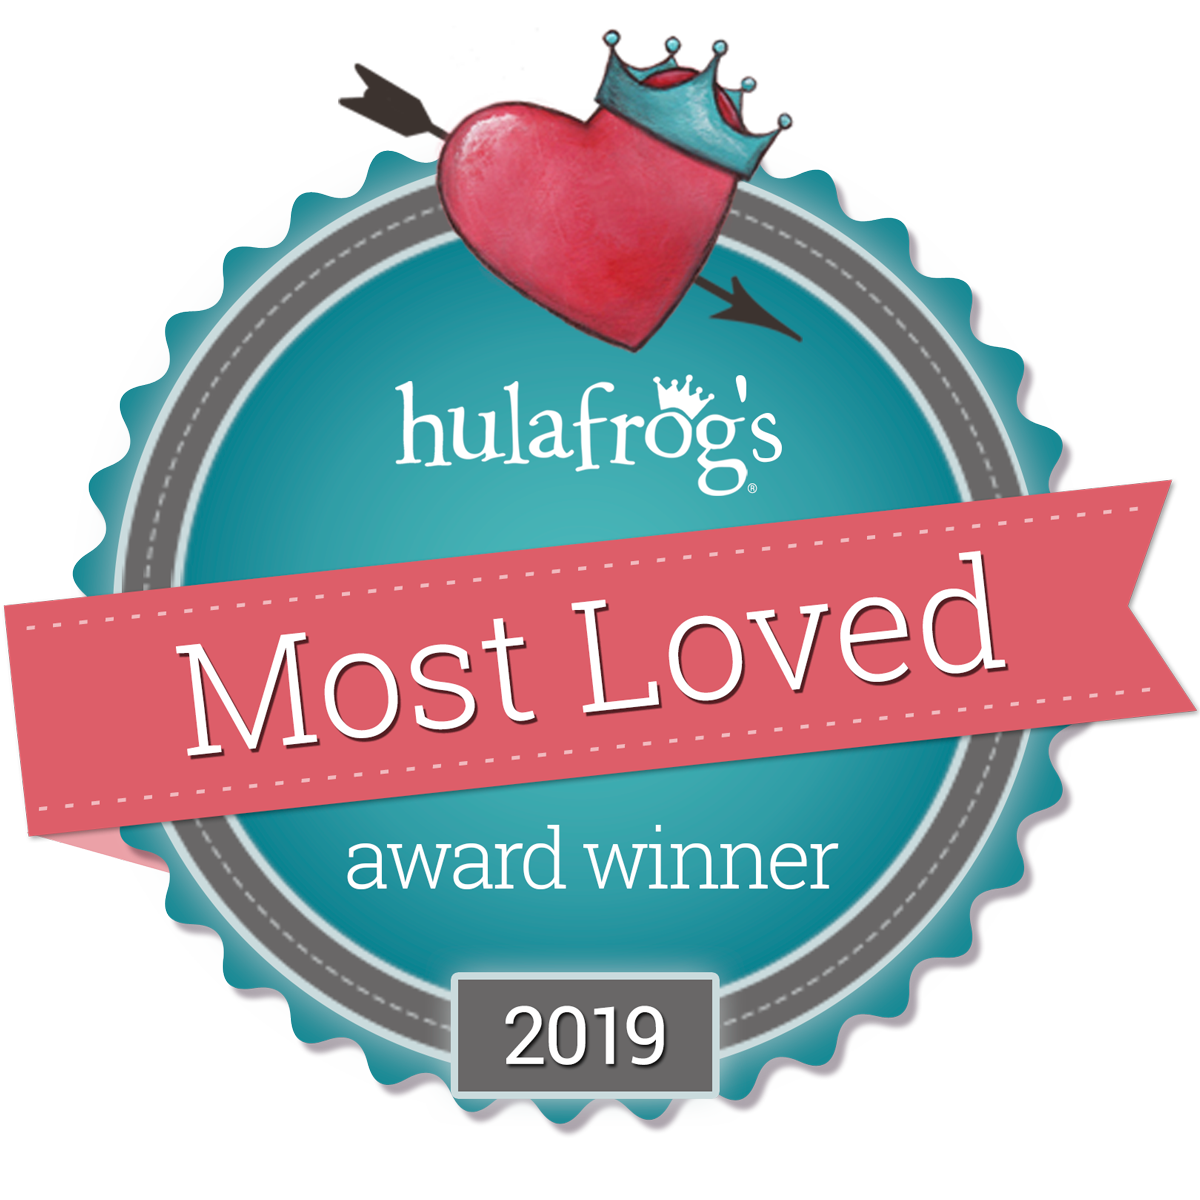 Hulafrogs-Most-Loved-Badge-Winner-2019-1200.png